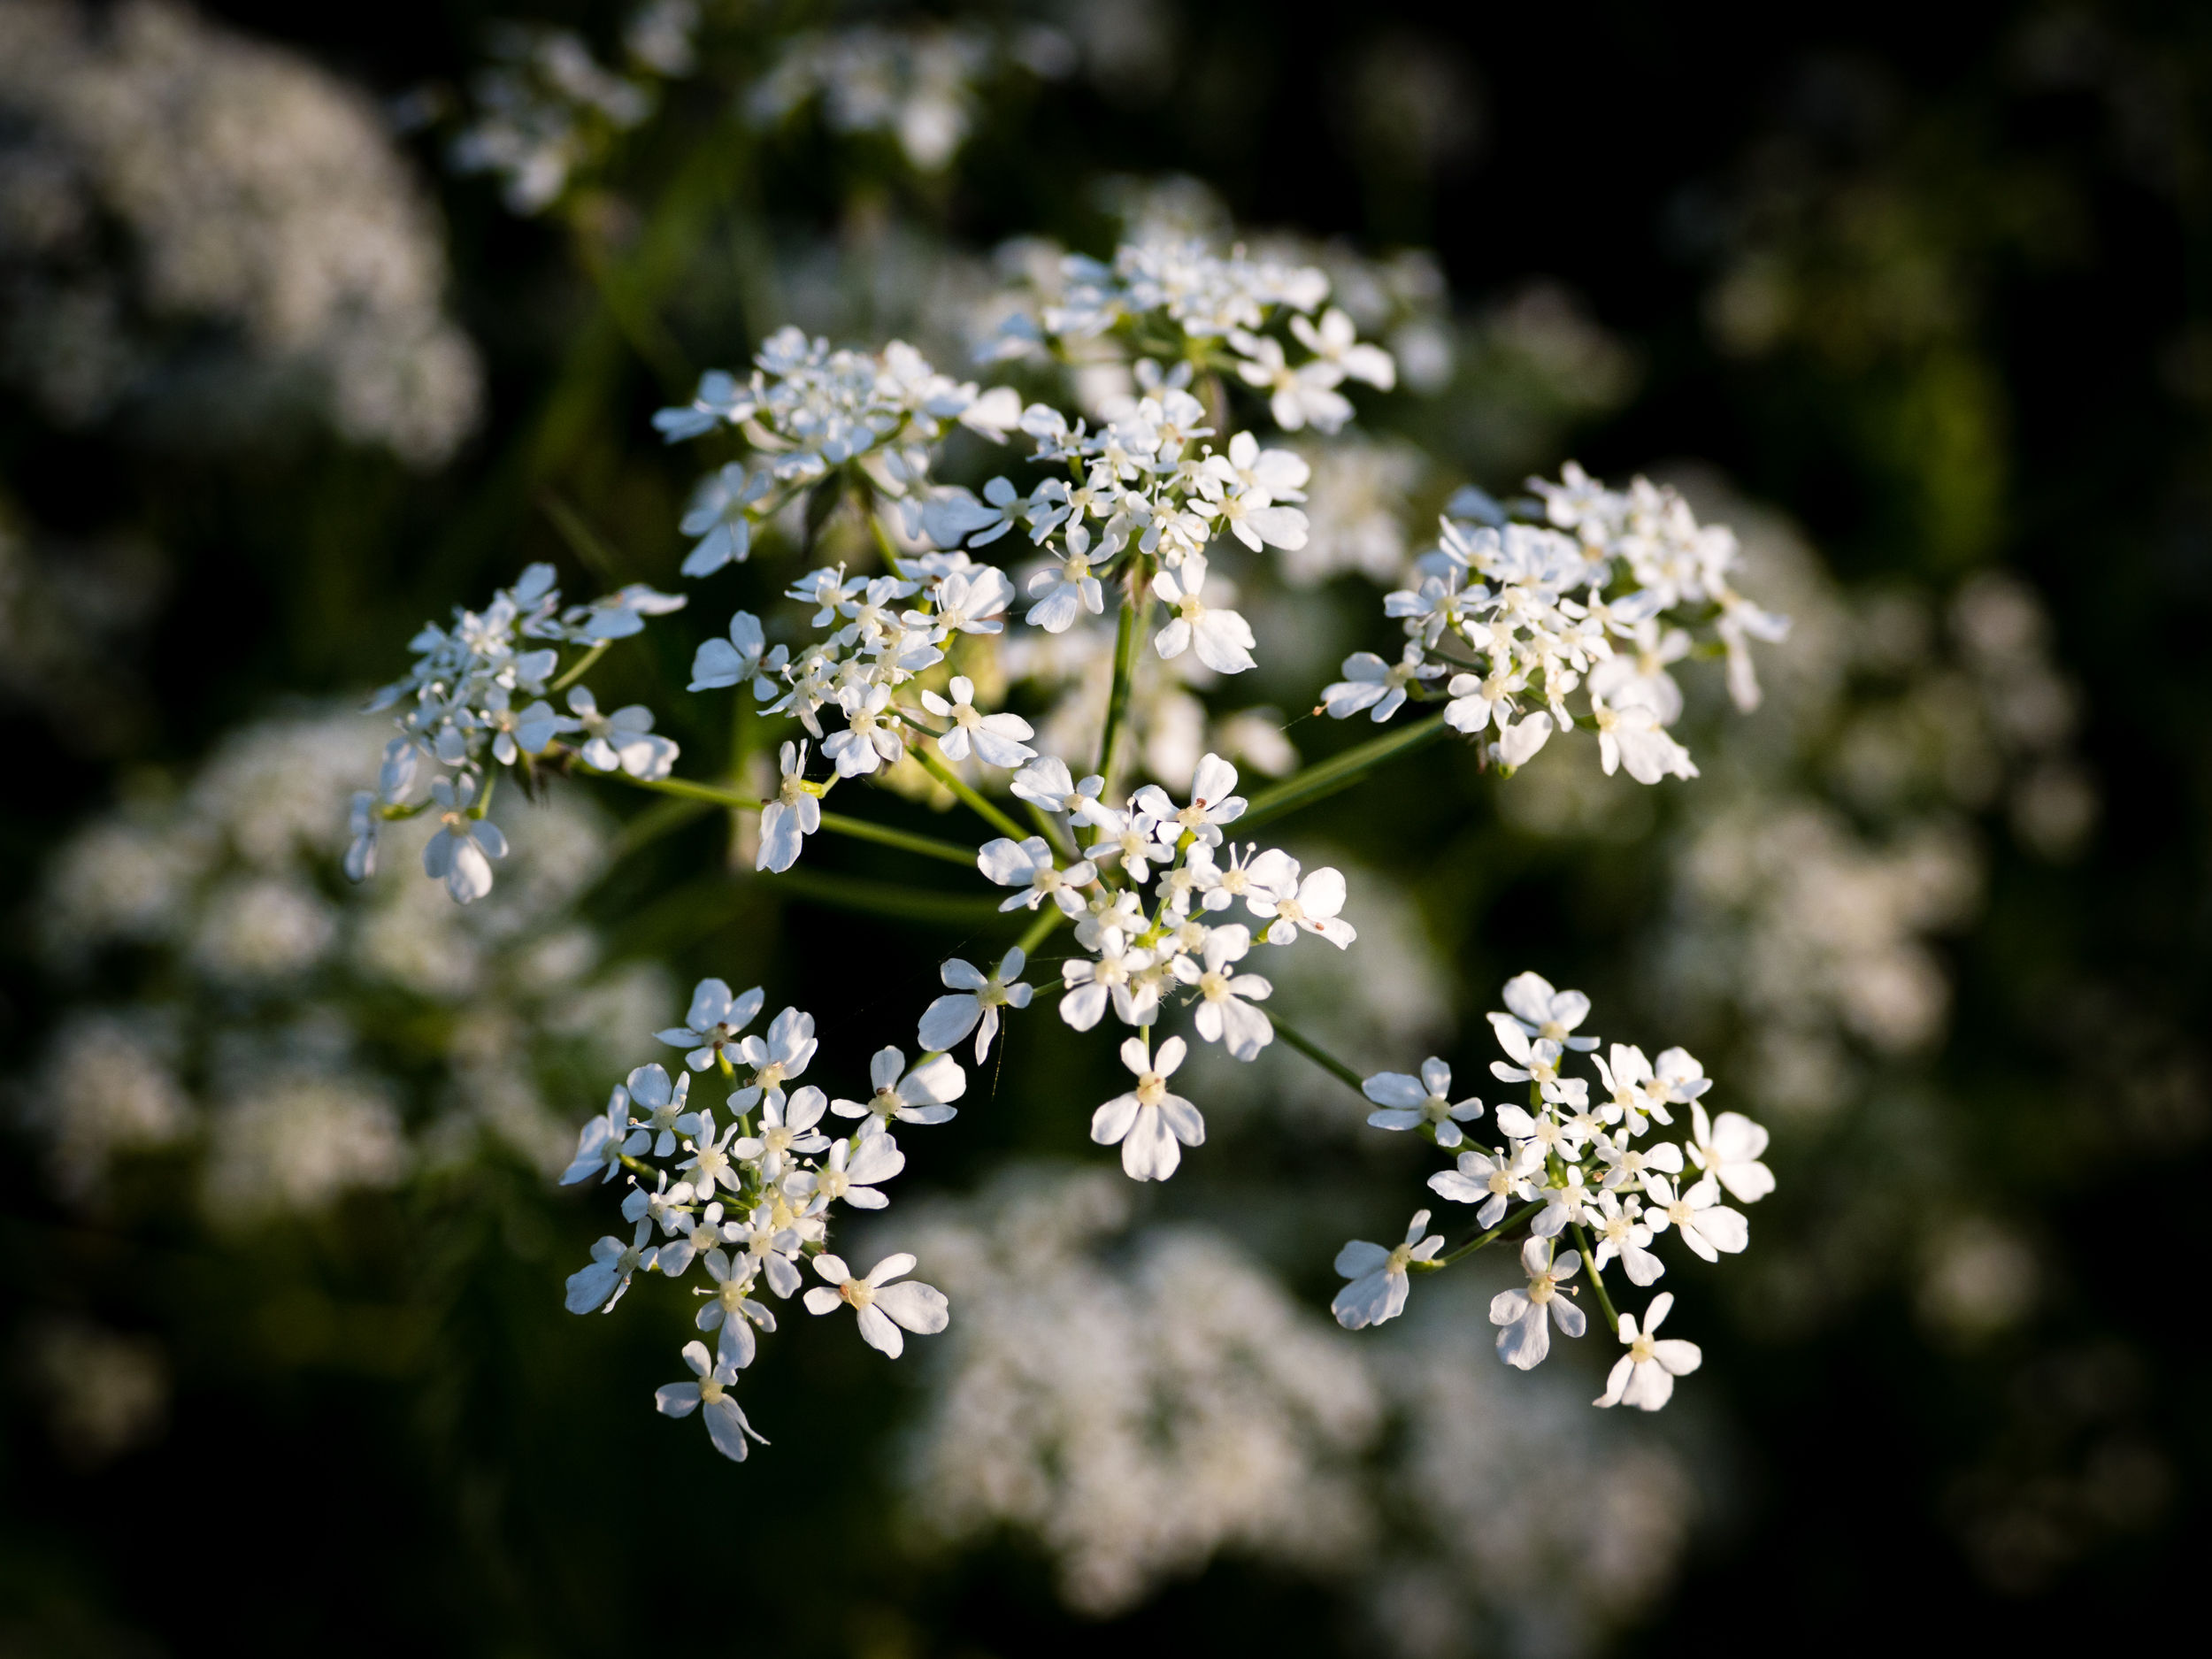 Daniel Burge Wild Communion plant medicine. Photo of Cow Parsley